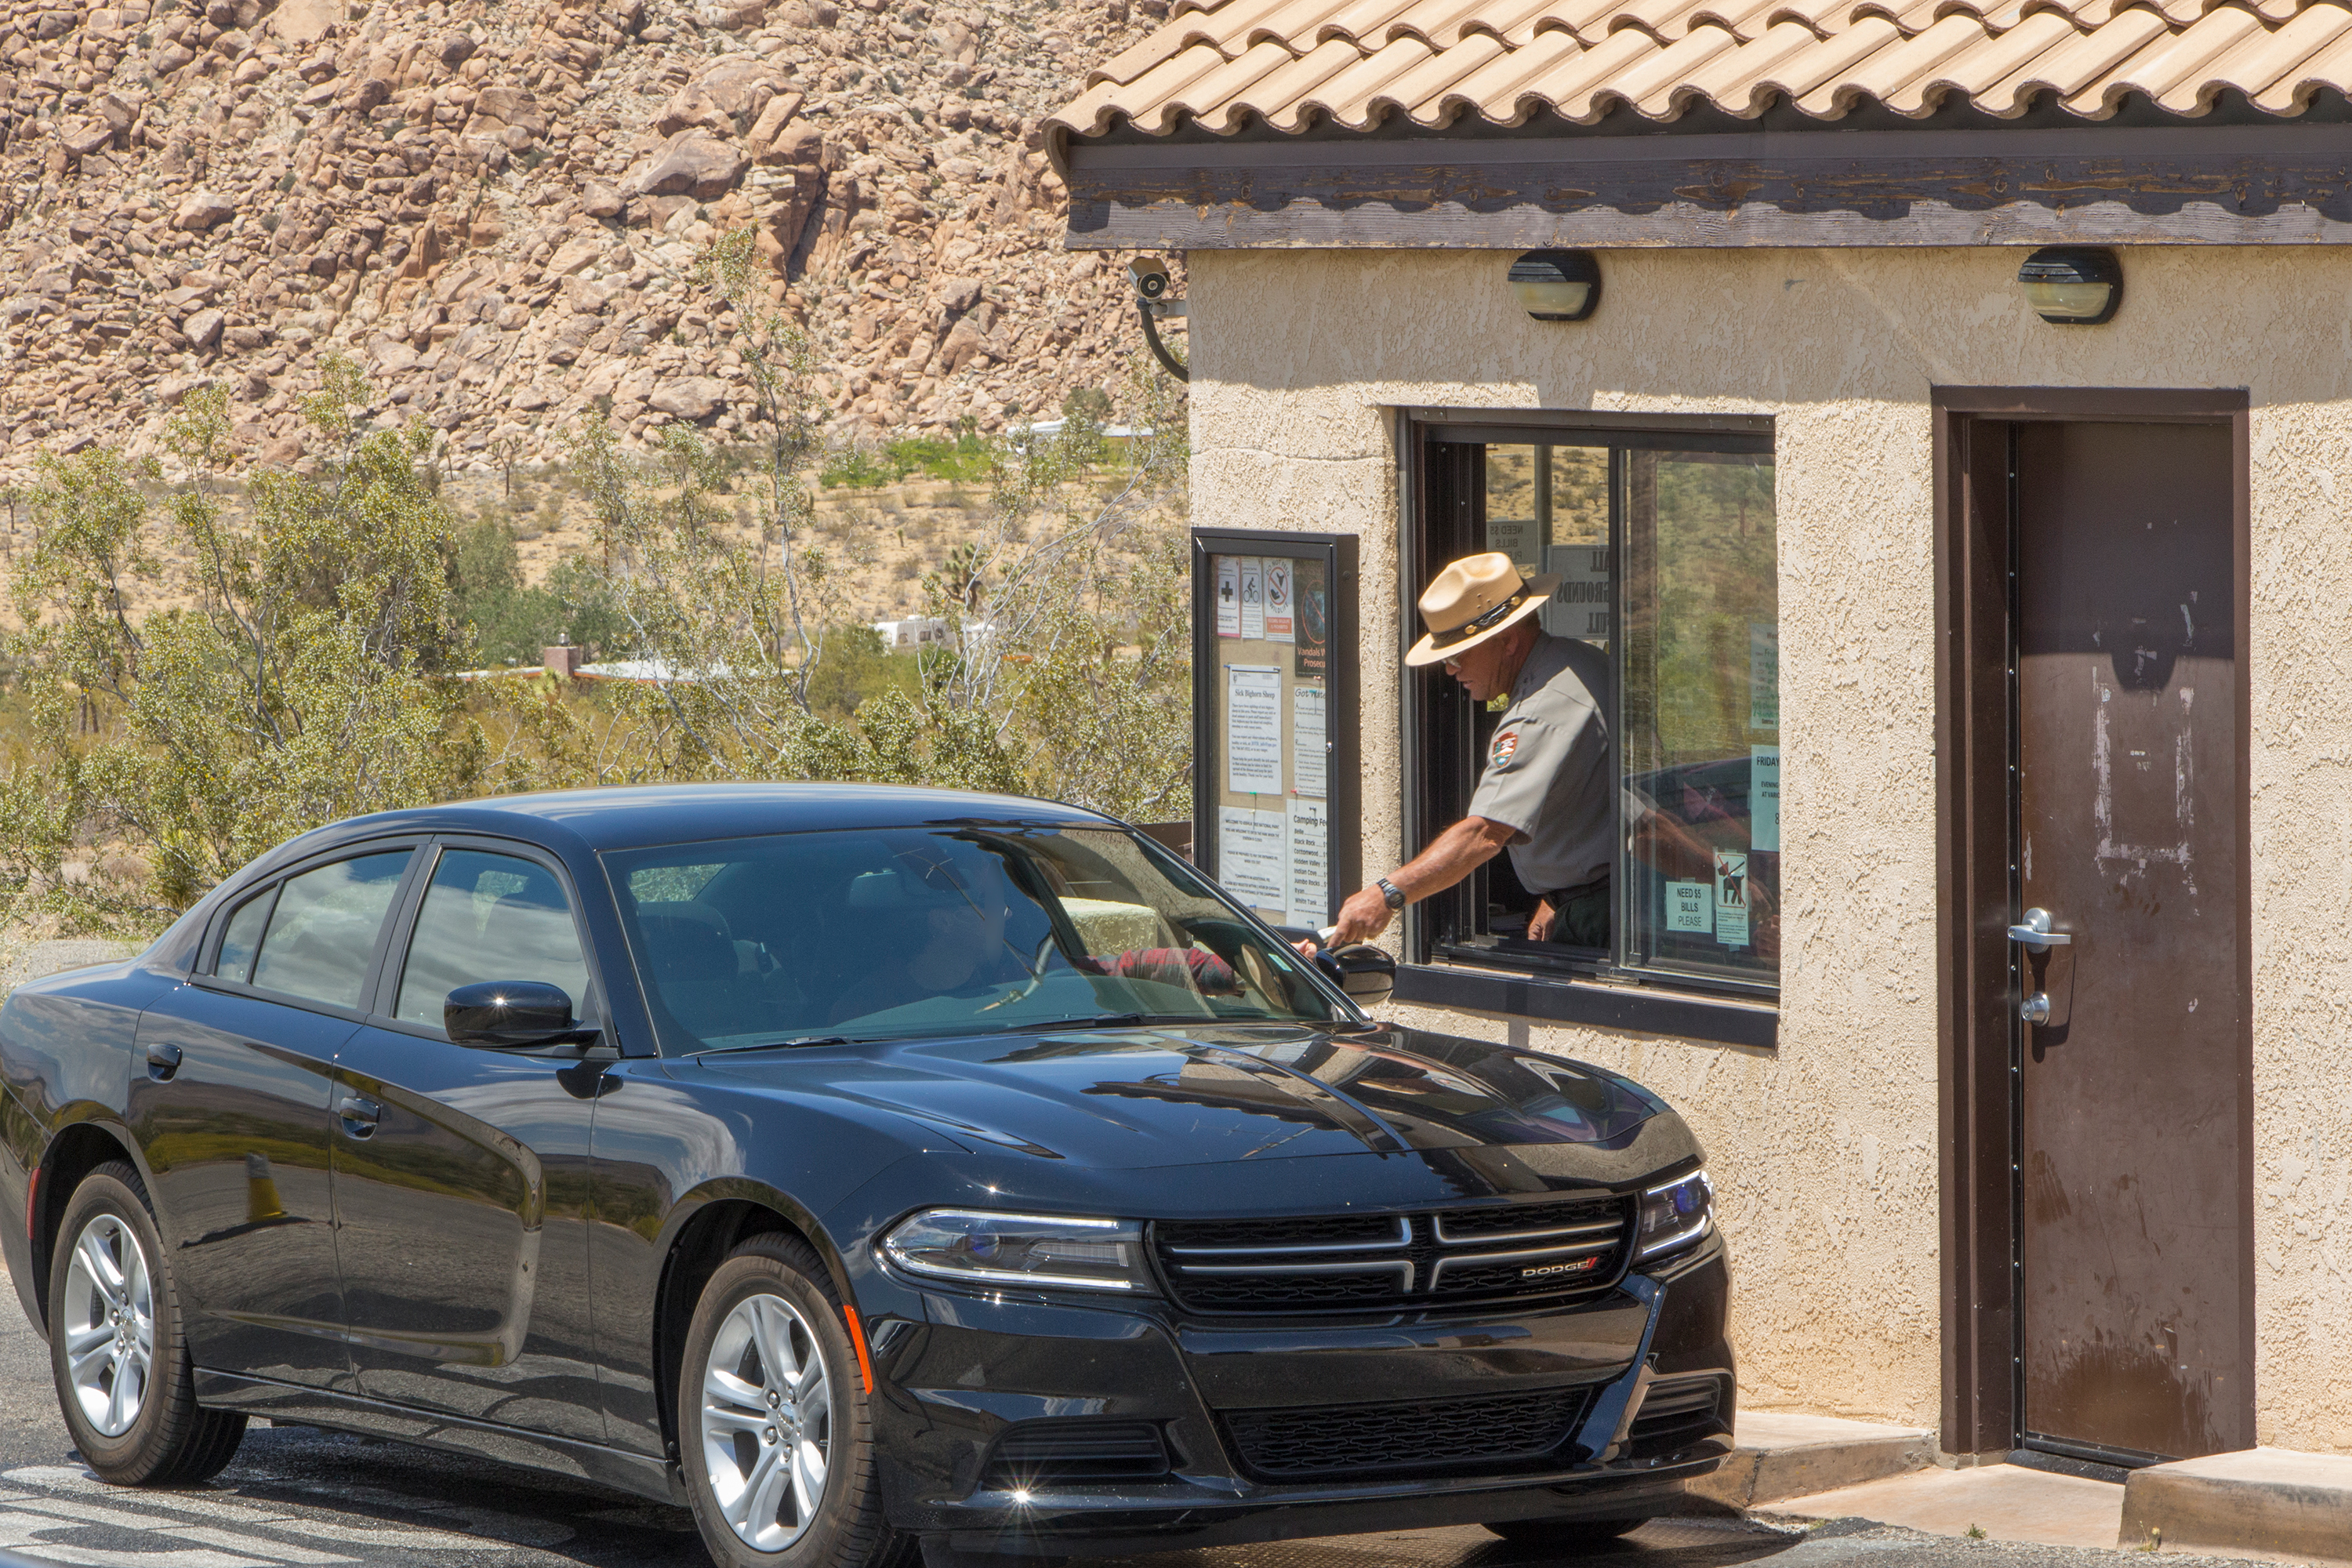 Color photo of a black car stopped at the entrance station gate as the ranger inside the gate leans out to interact with the visitor and hand over a park map..